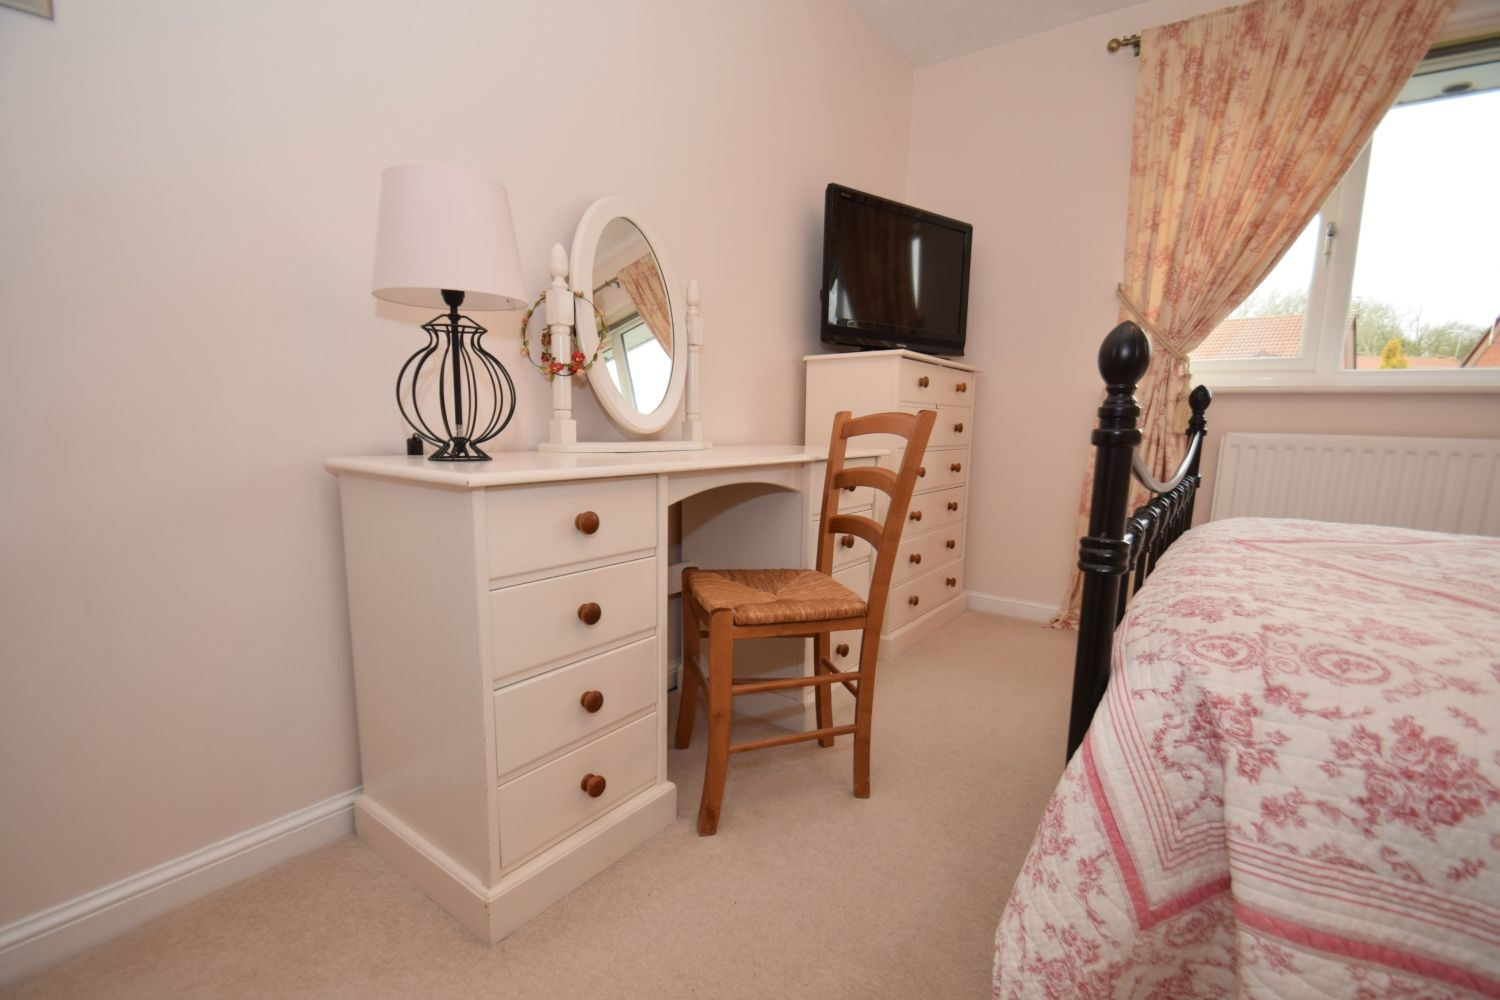 3 bed detached for sale in Foxes Close, Blackwell, B60 12